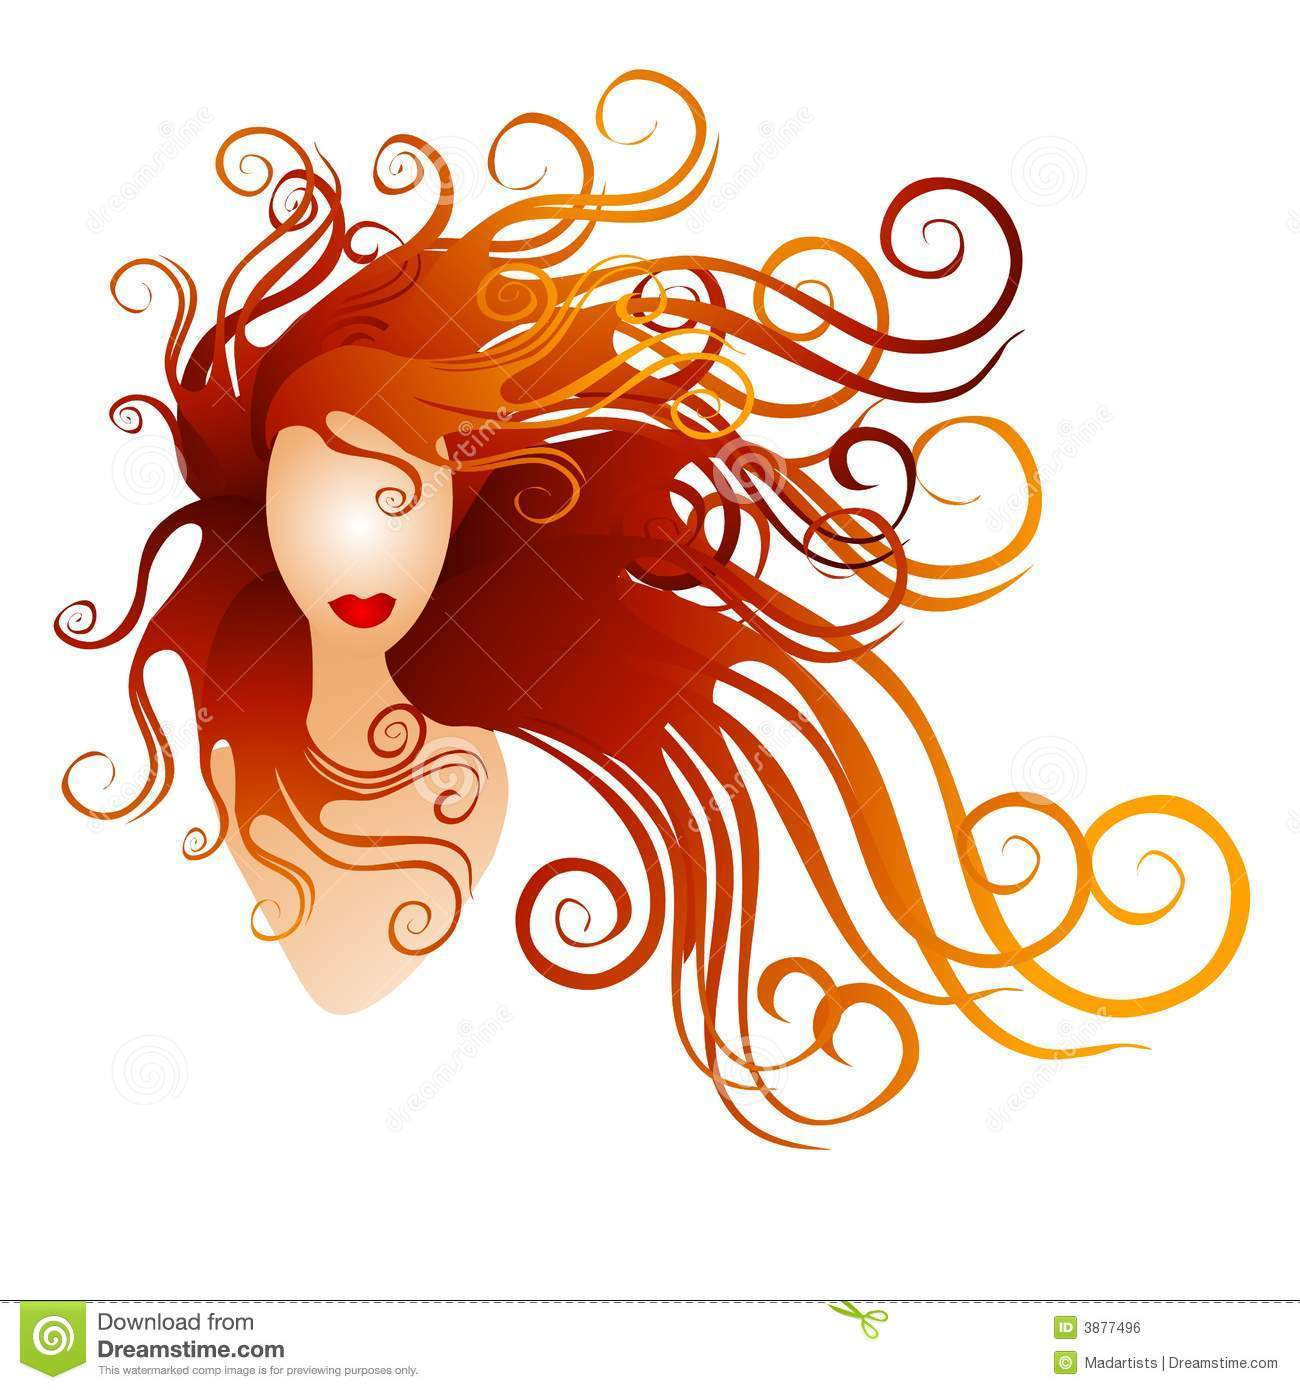 Illustration Of A Woman With Long Red Flowing Hair Isolated On White